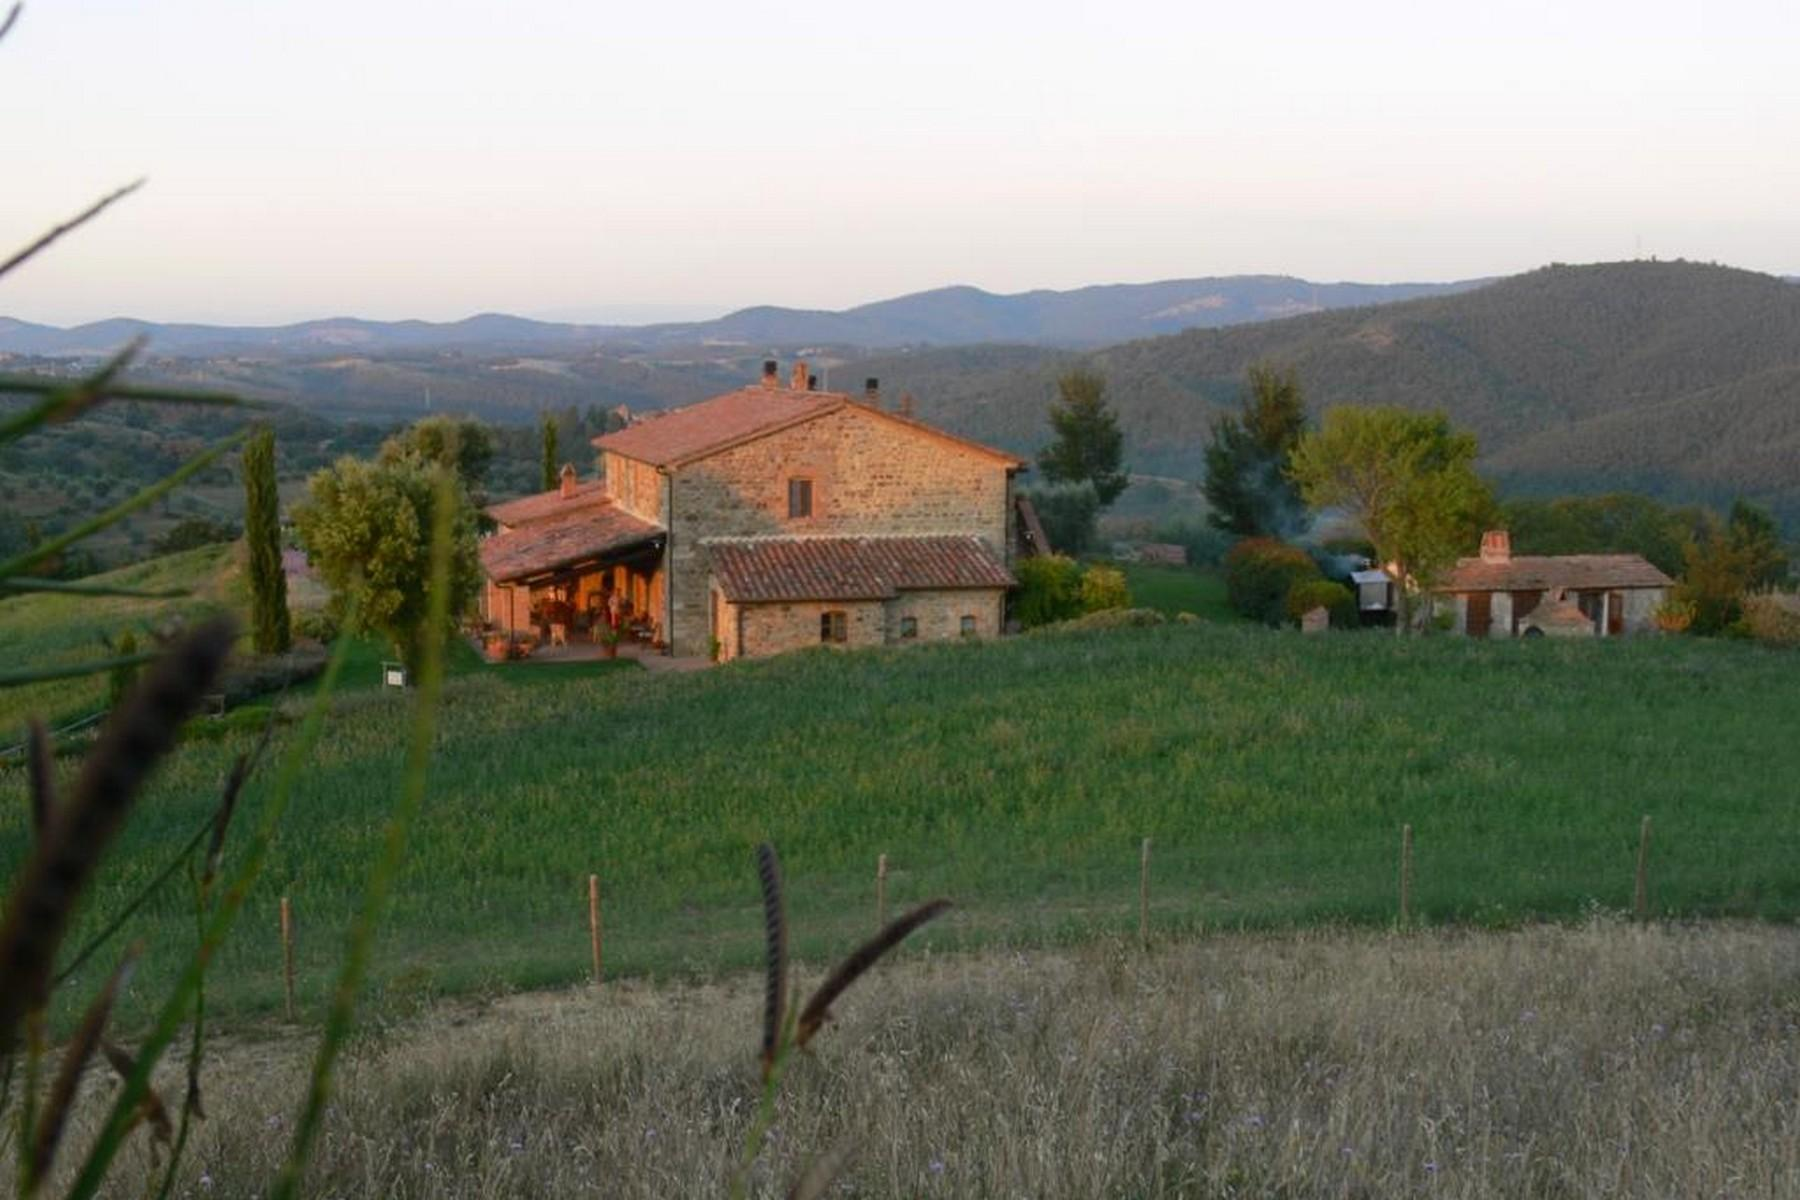 Enchanting farmhouse in Umbrian countryside - 4